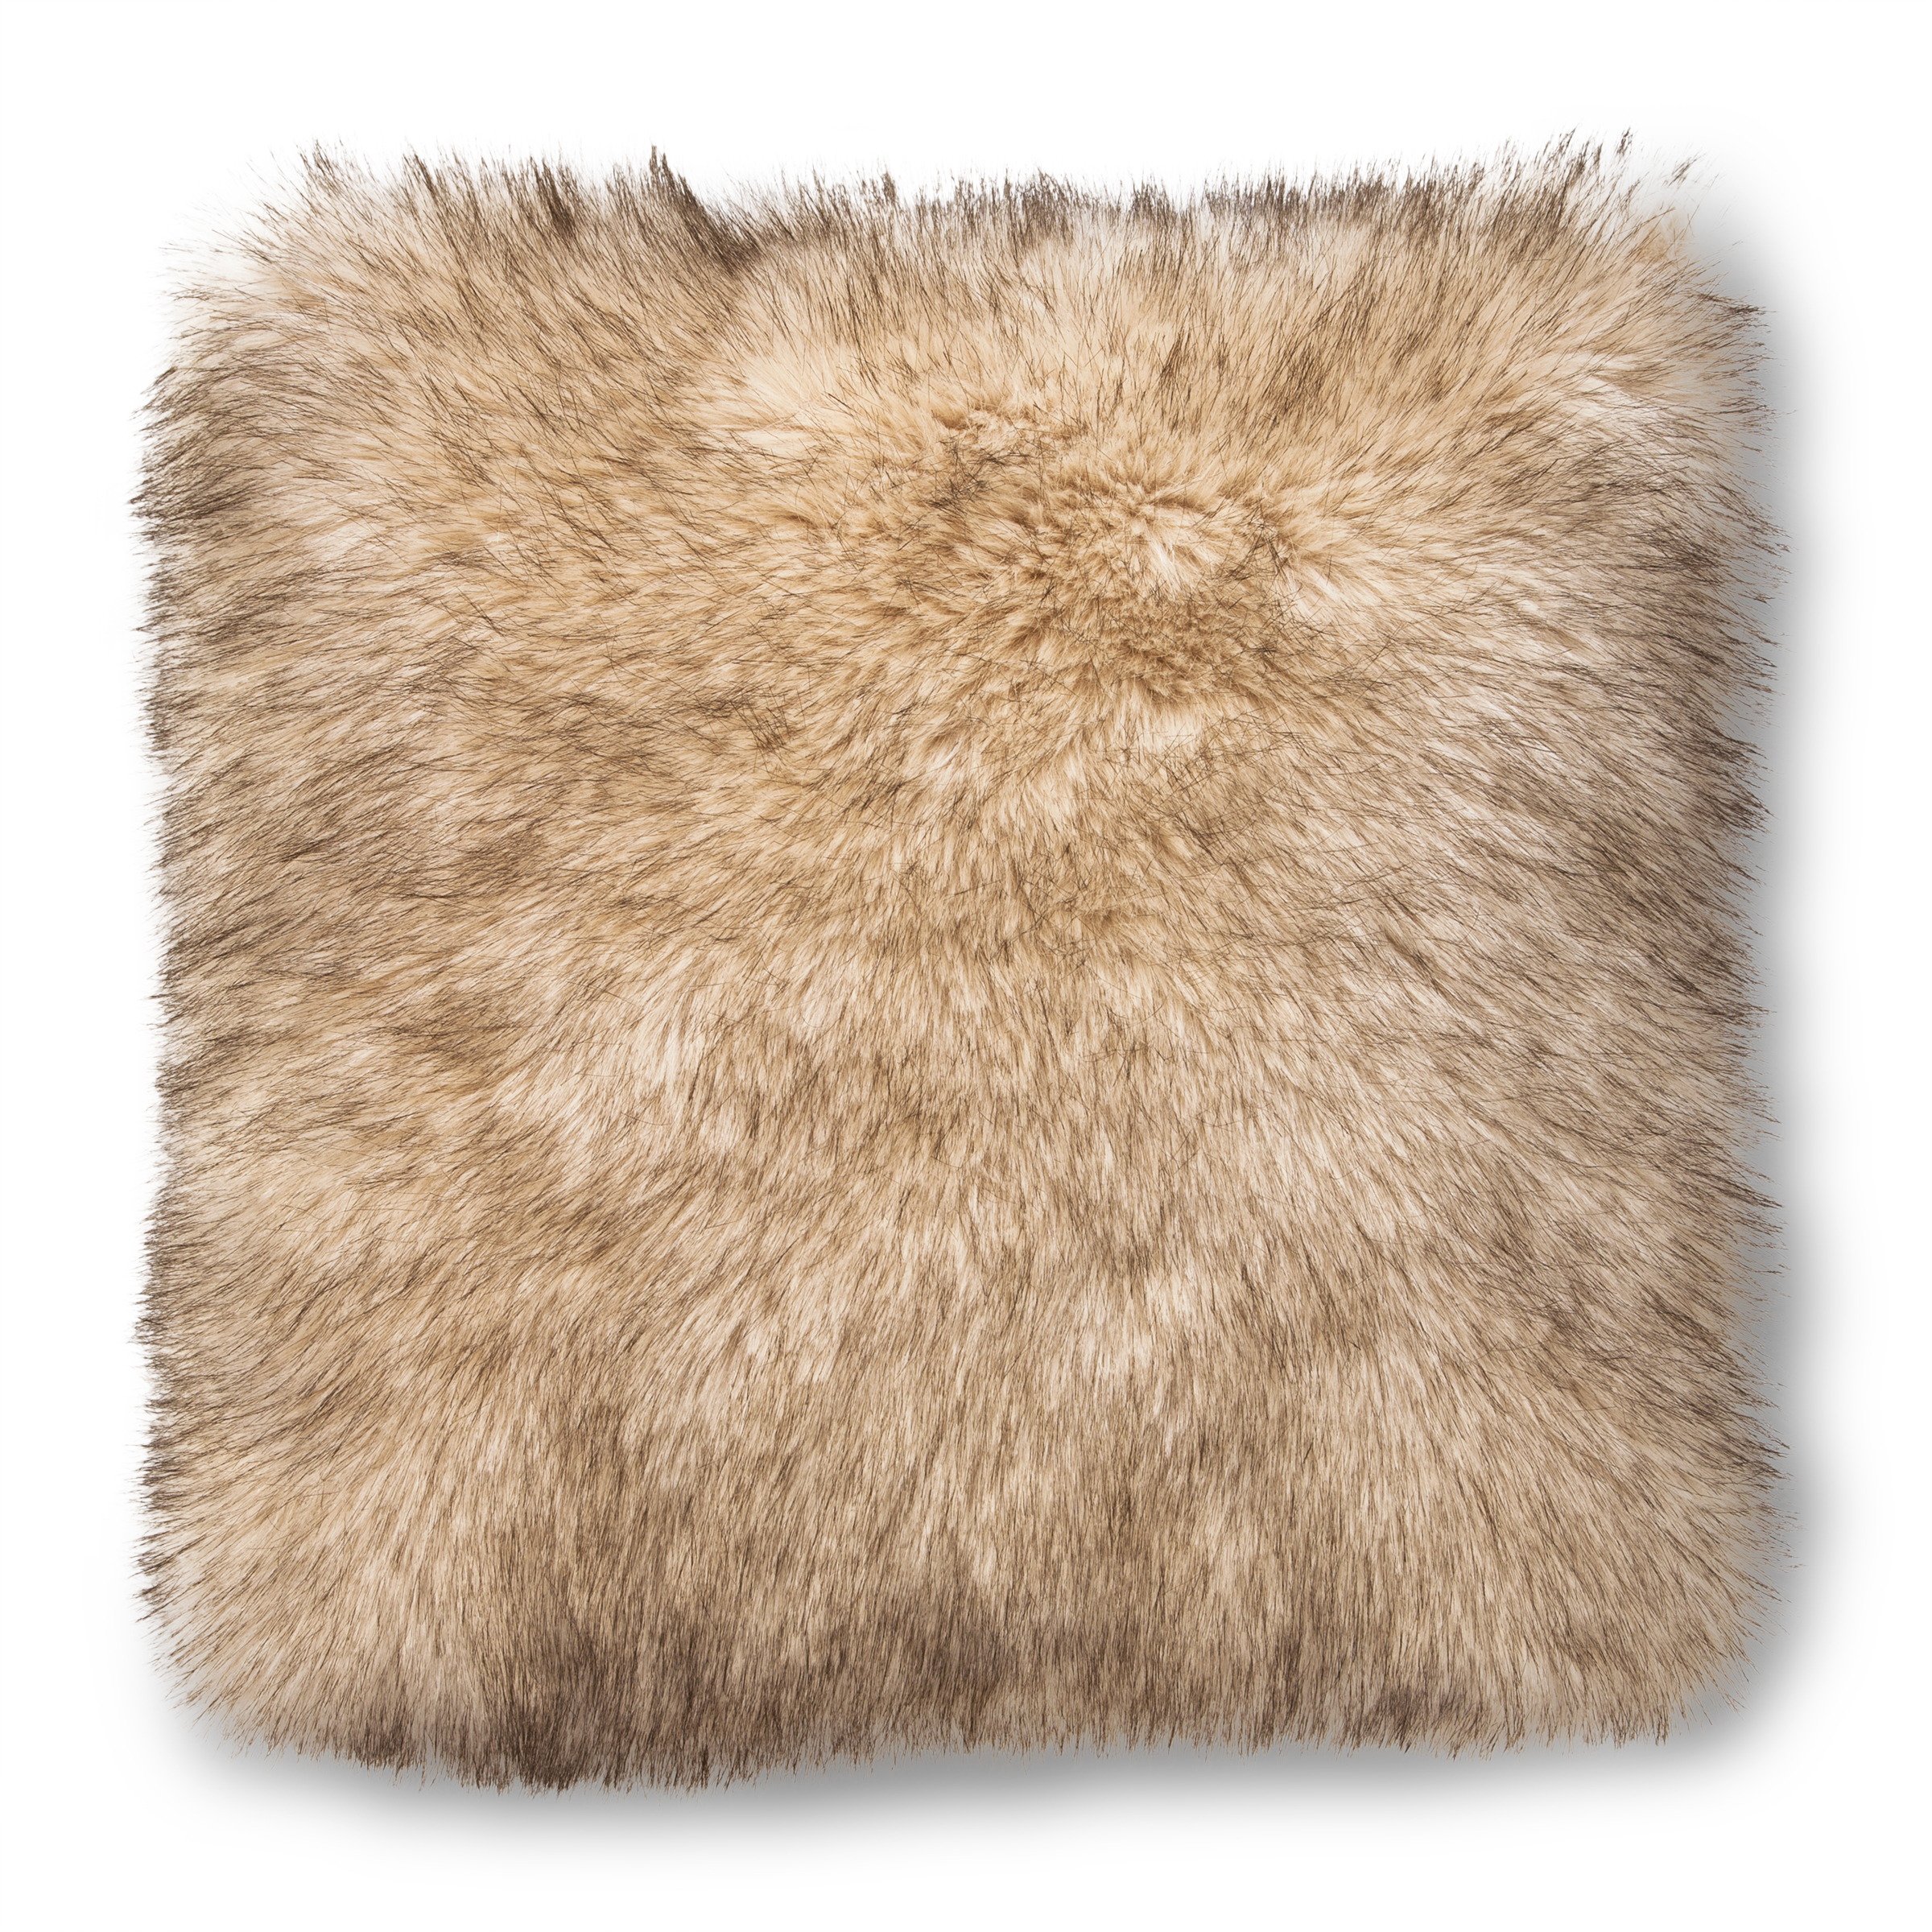 other mongolian format anhui fur pillow skyworth product llc